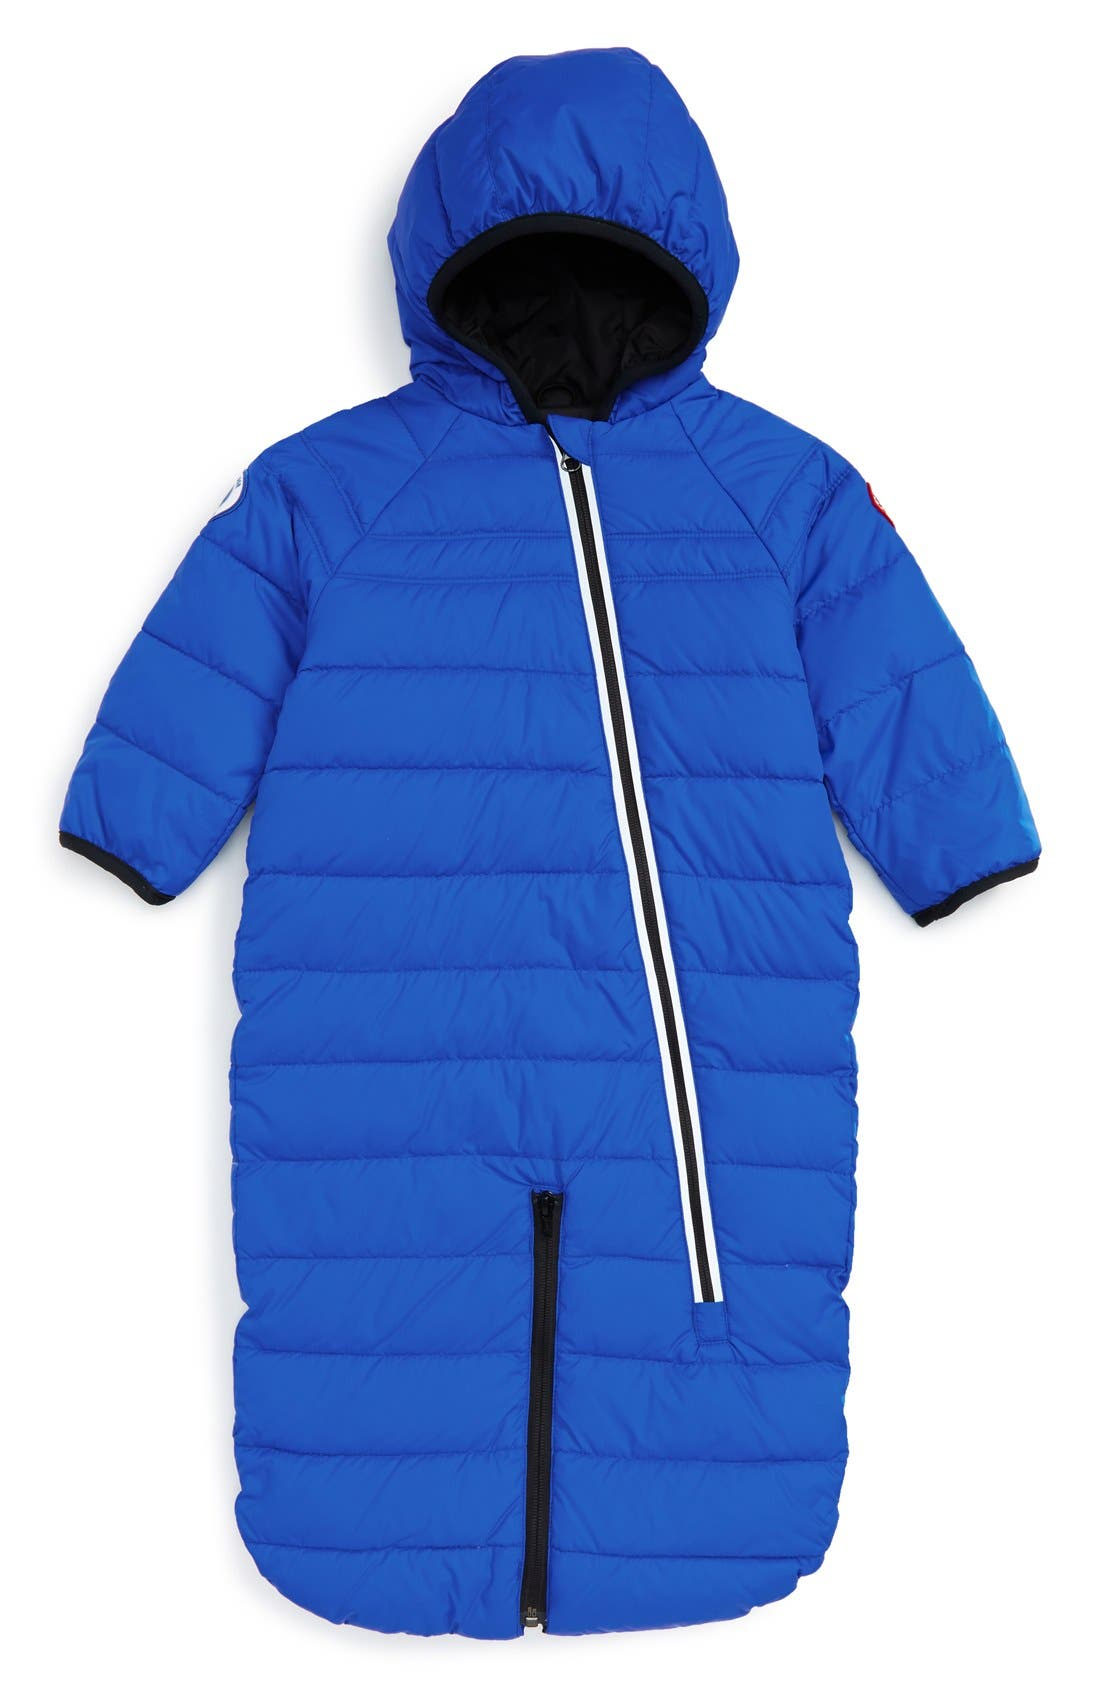 Main Image - Canada Goose 'Pup' Water Resistant Hooded Down Bunting (Baby Boys)